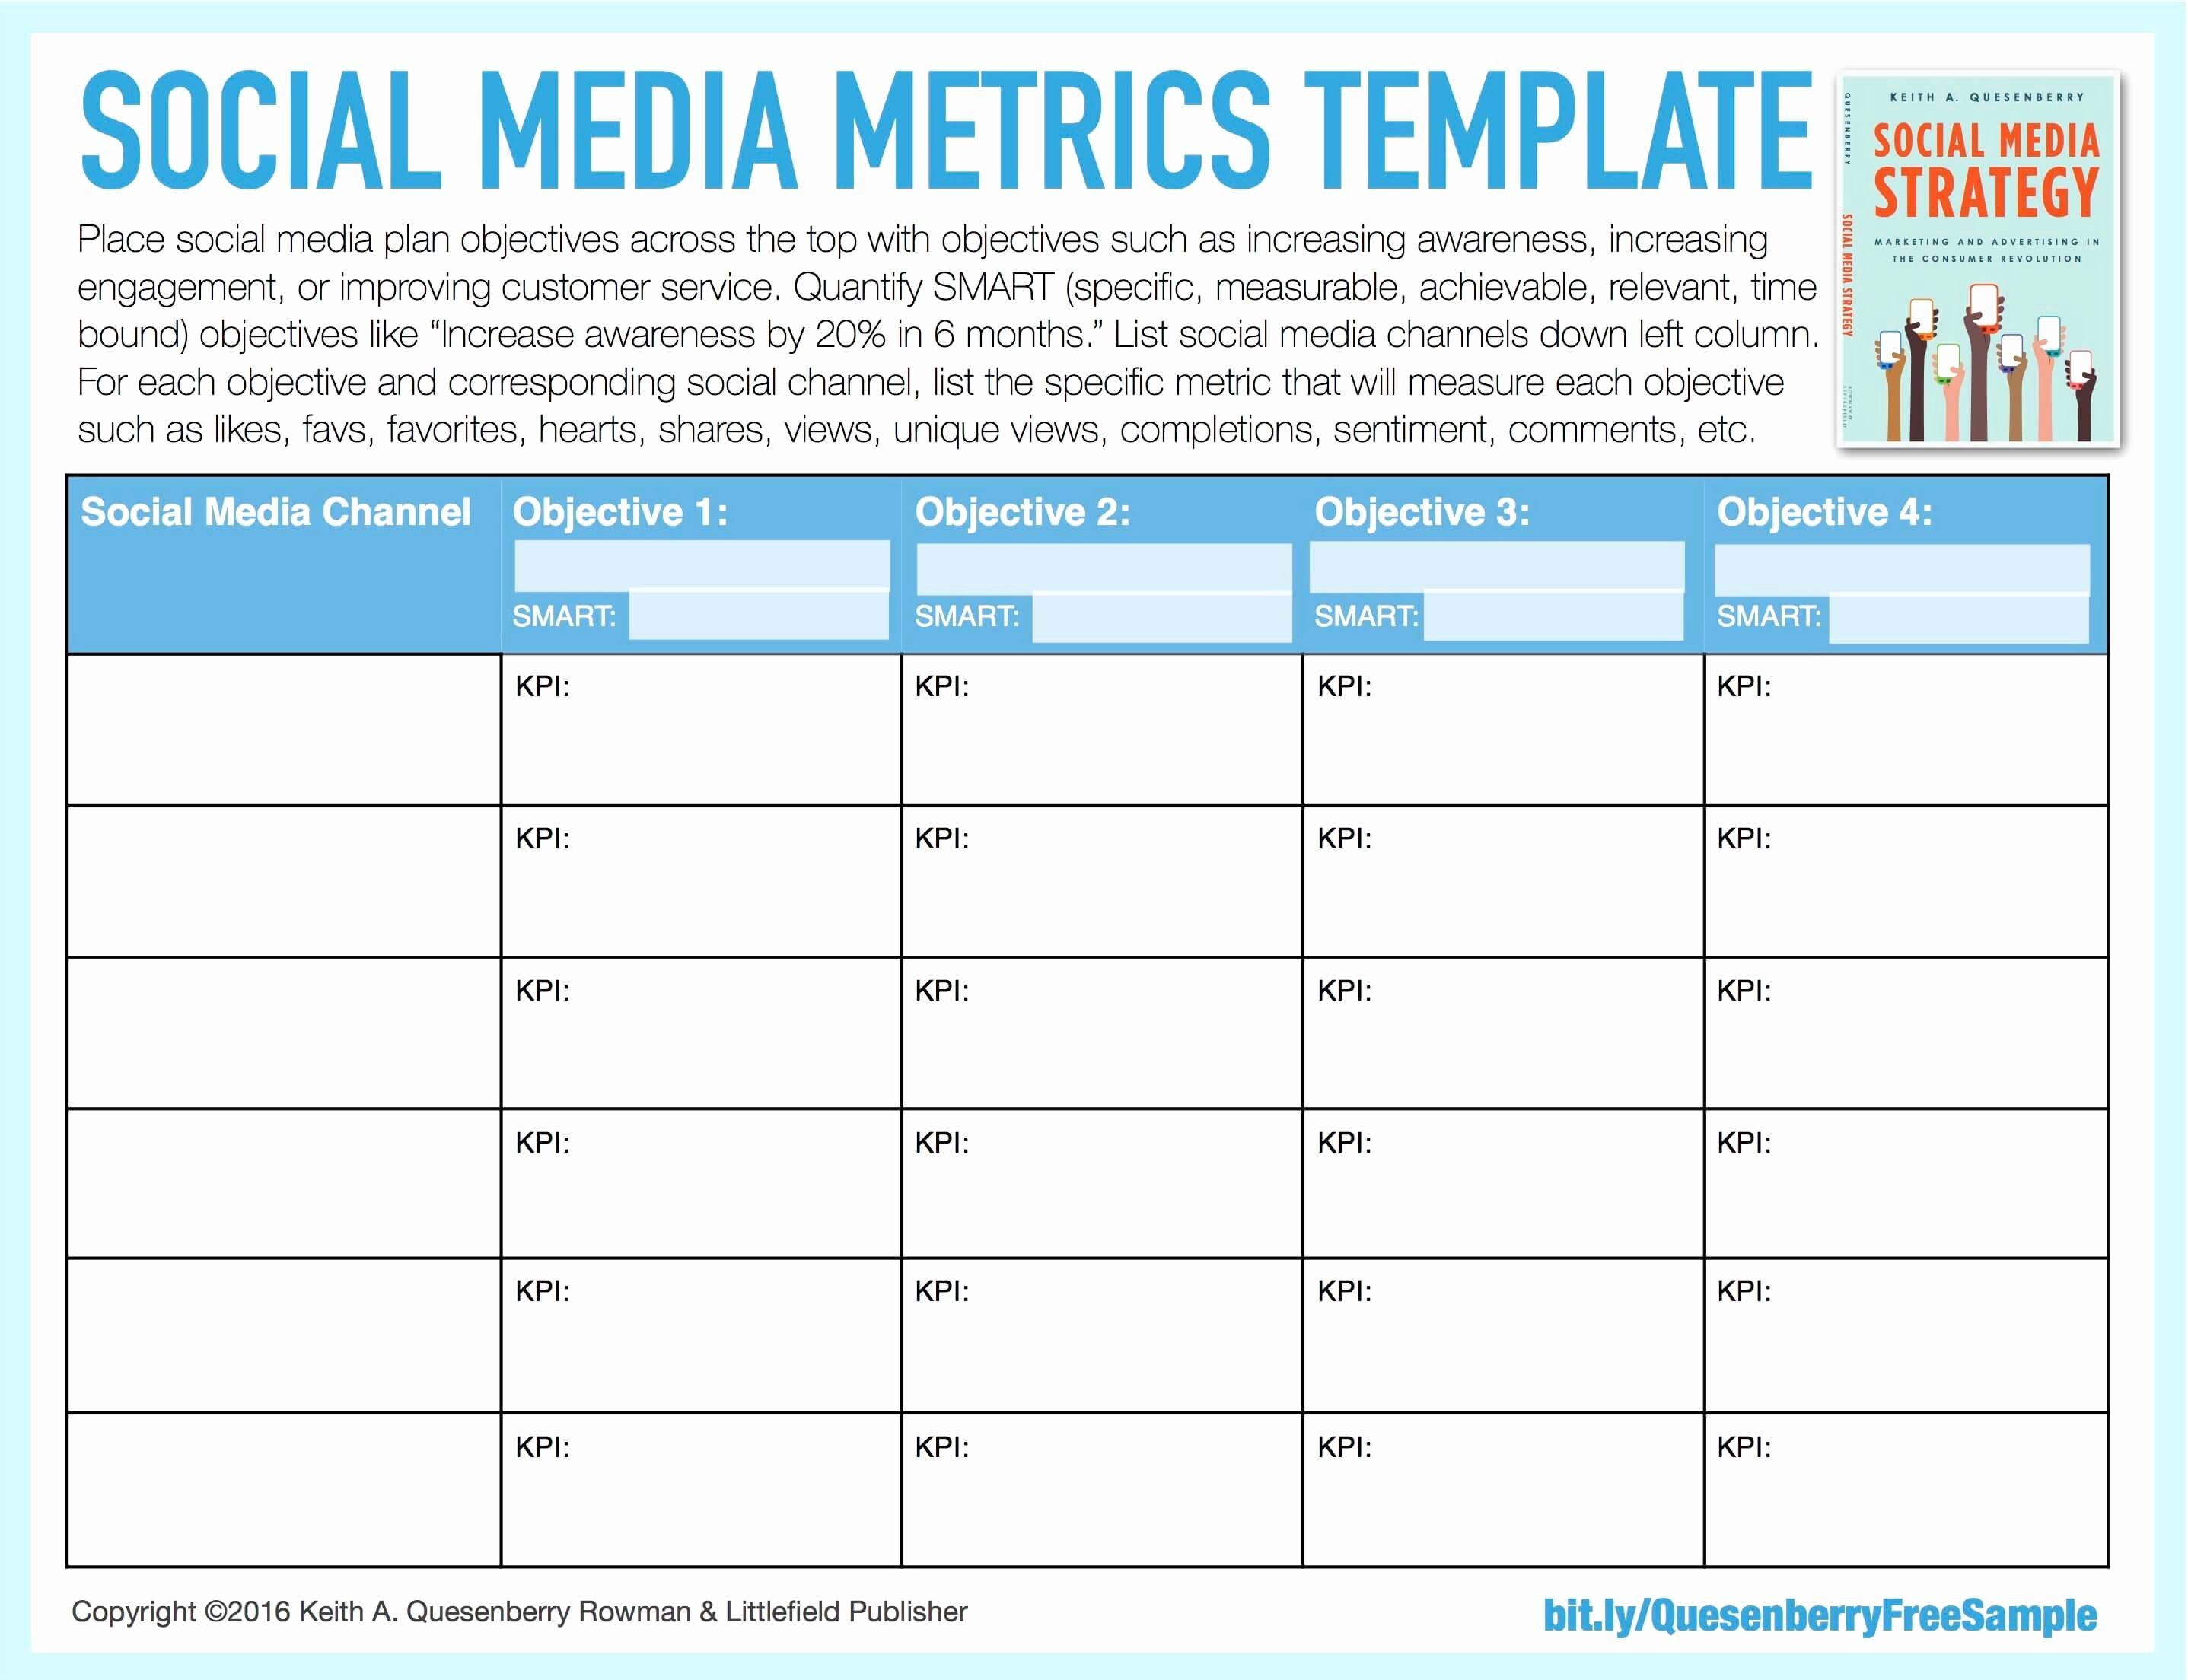 Social Media Post Schedule Template Beautiful Resources Social Media For Munication Social Media Strategy Template Social Media Metrics Social Media Planning